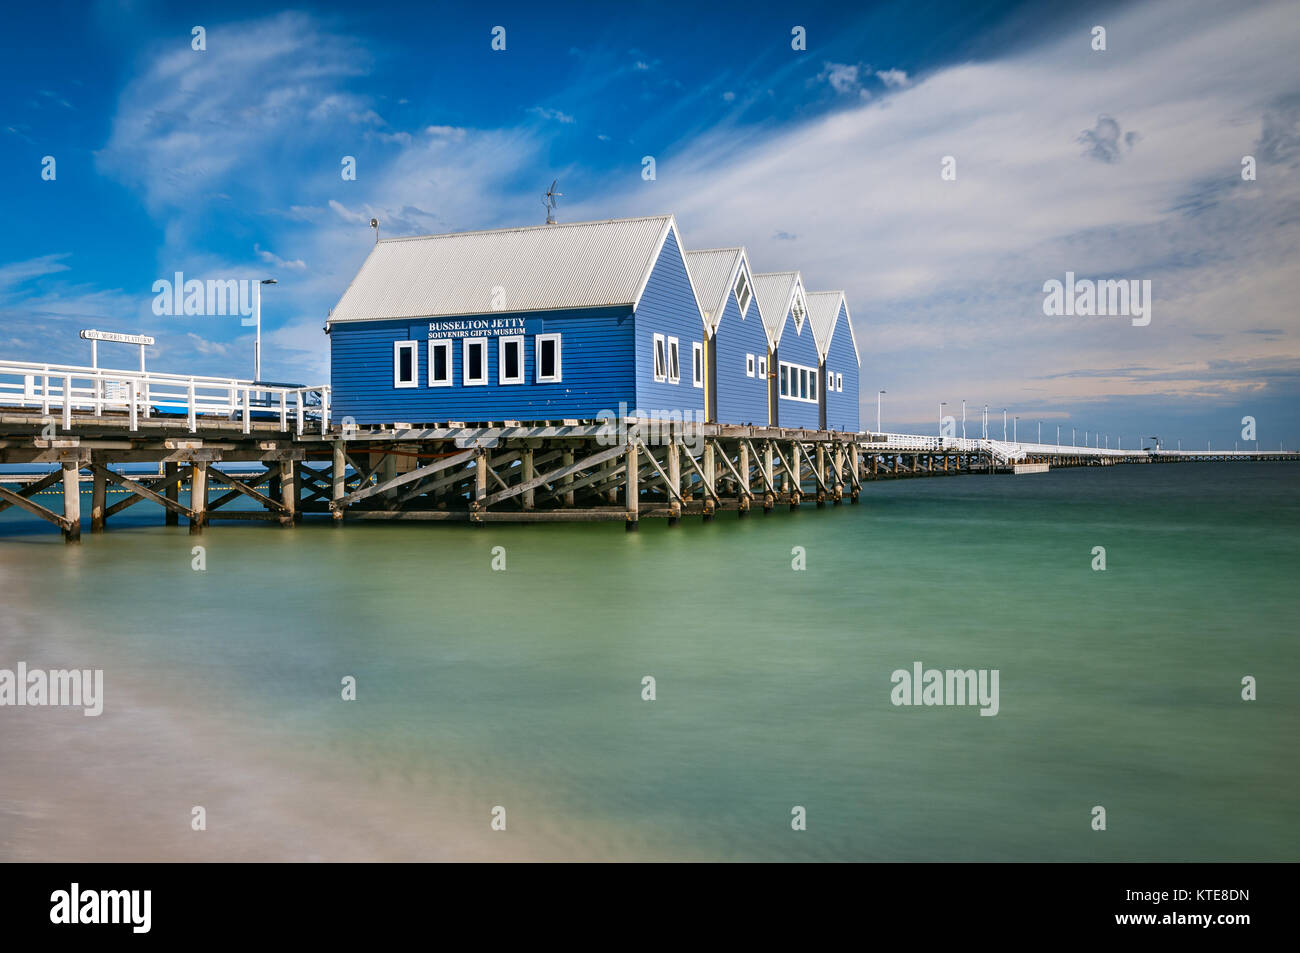 Busselton Jetty is the longest jetty in the southern hemisphere. - Stock Image